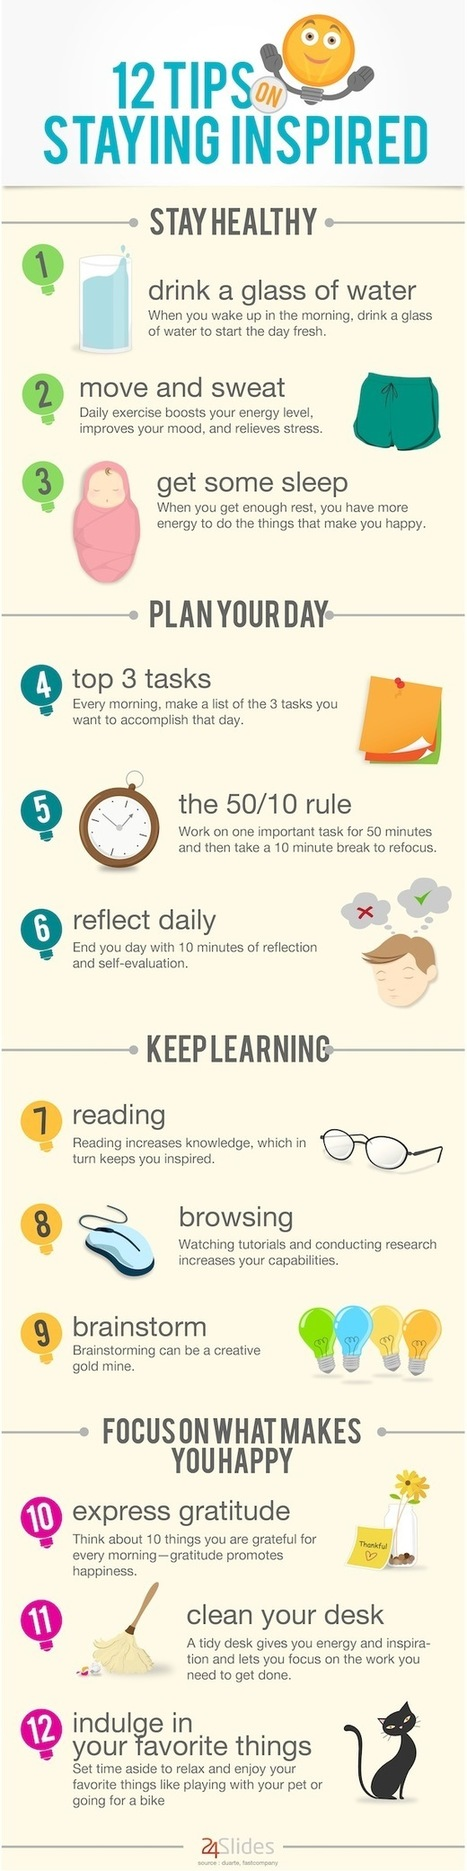 12 Tips on Staying Inspired #nfographic | Women's leadership | Scoop.it